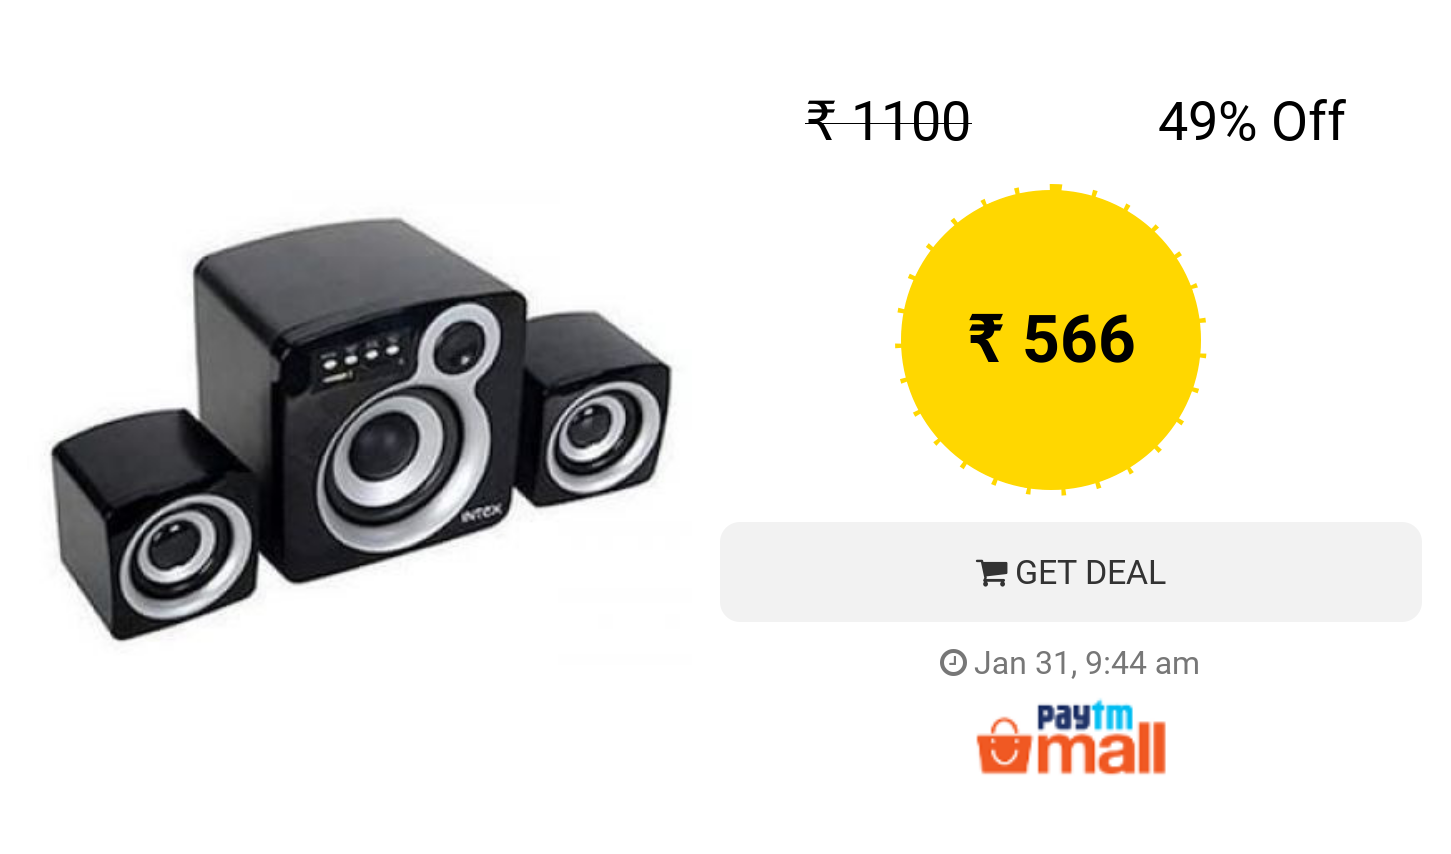 Intex it  speakers wired speaker grey black also deals rh ar pinterest